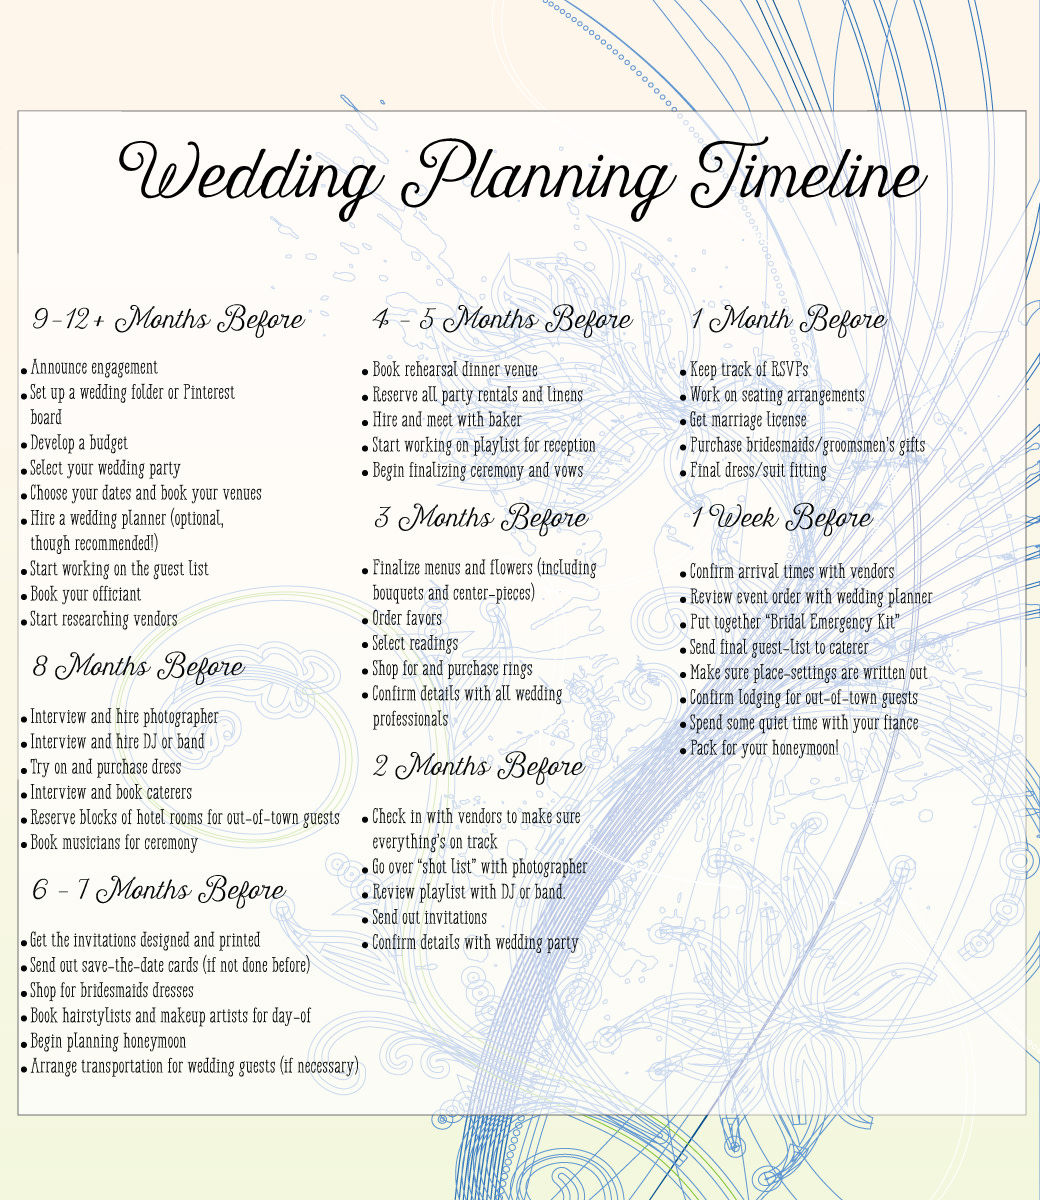 This Timeline Will Help You Keep Track Of All Your Wedding Plans